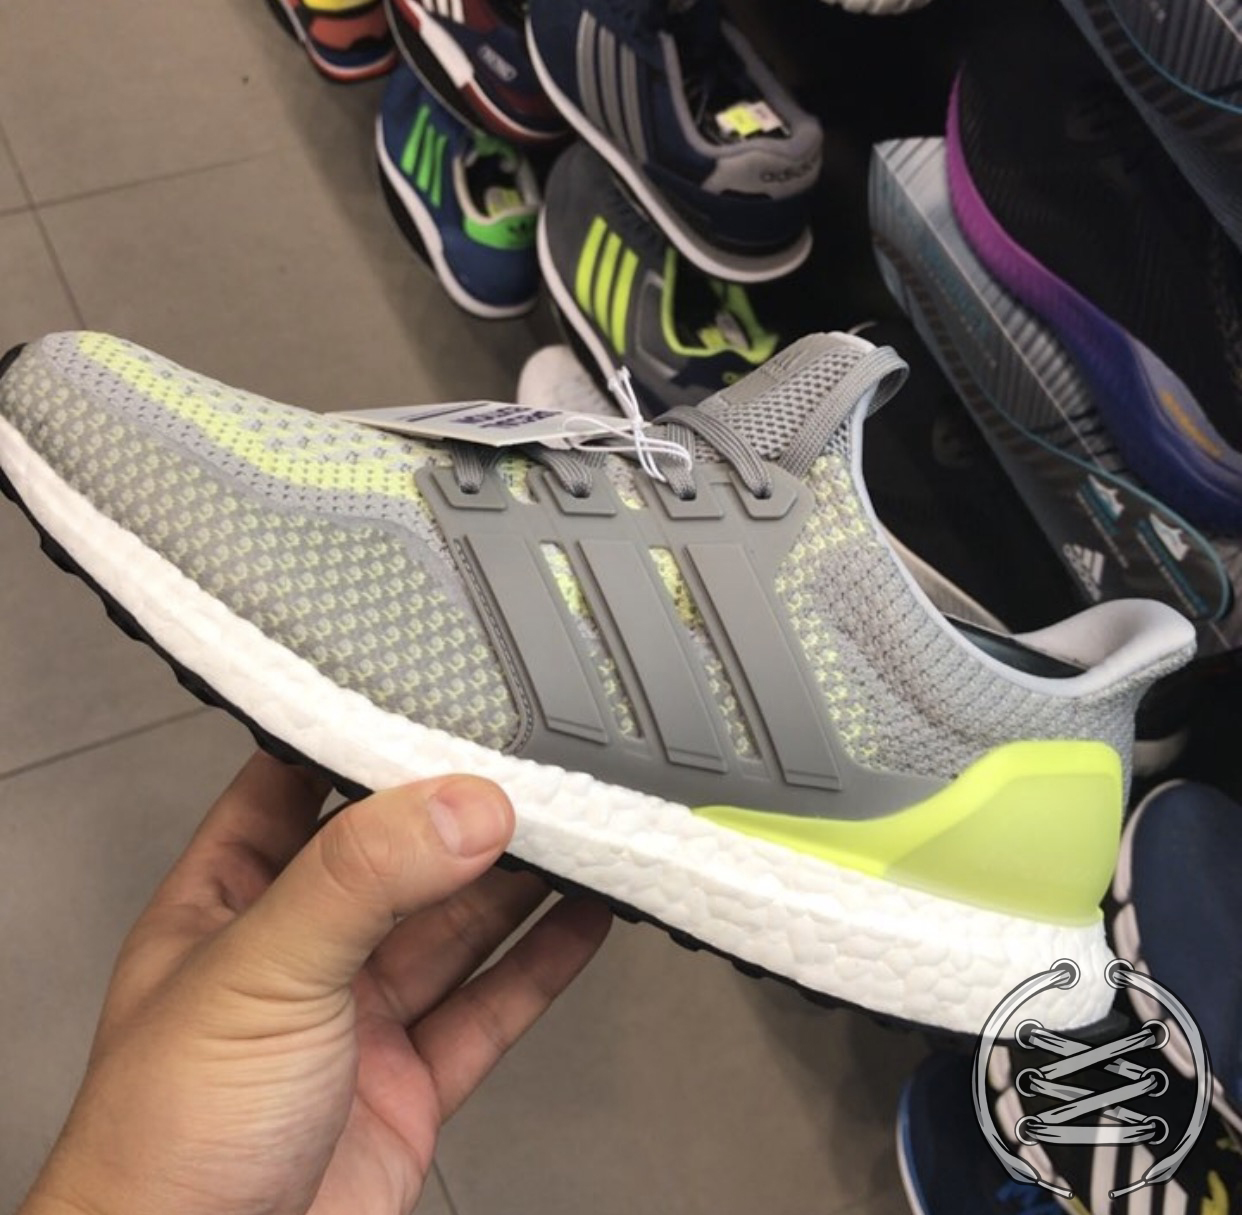 216f9e5e707 ultraboost Archives - Page 2 of 3 - WearTesters